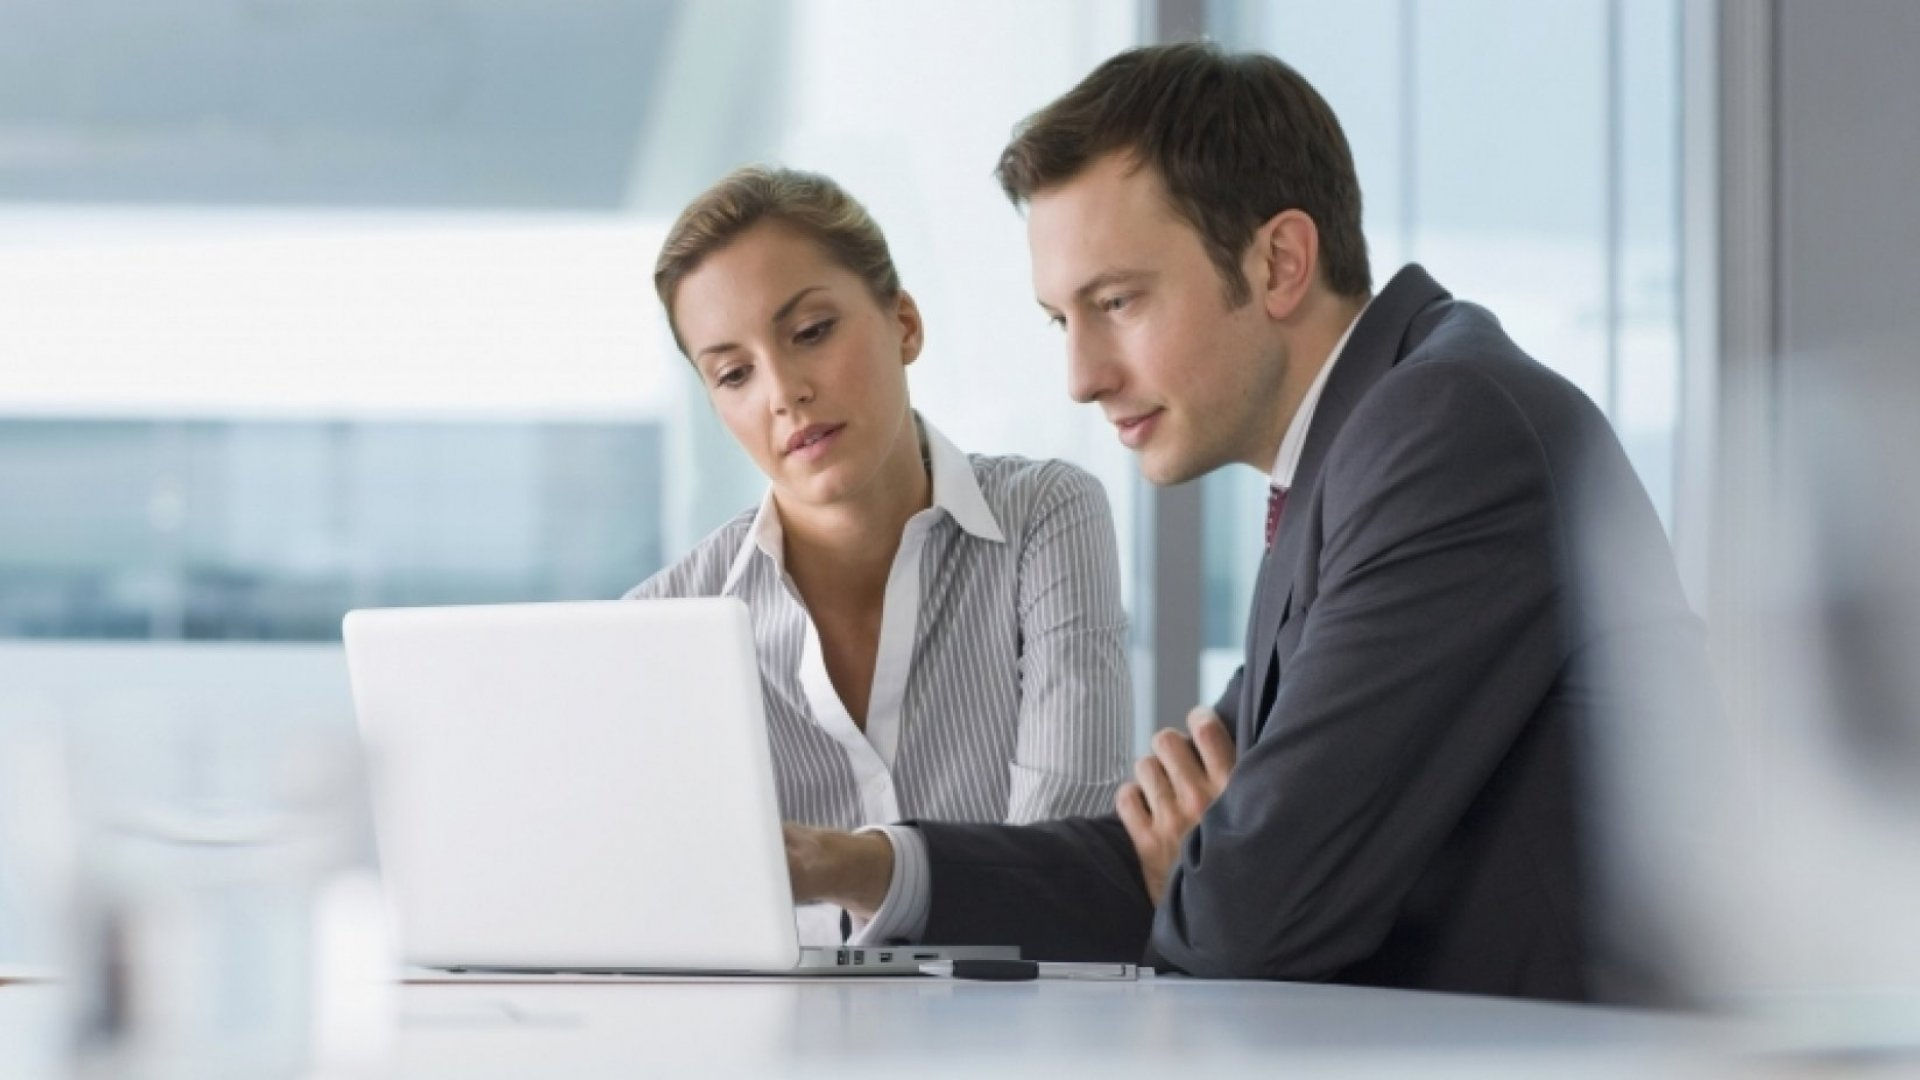 What Women Need from Men at Work